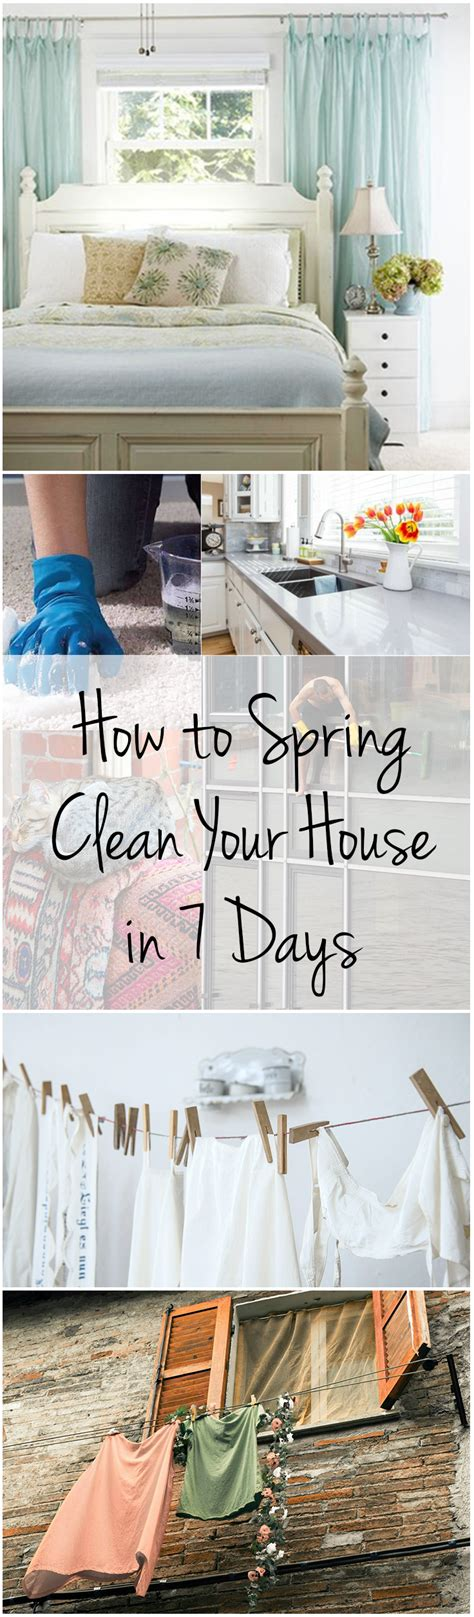 how to spring clean your house how to quot spring clean quot your house in 7 days wrapped in rust